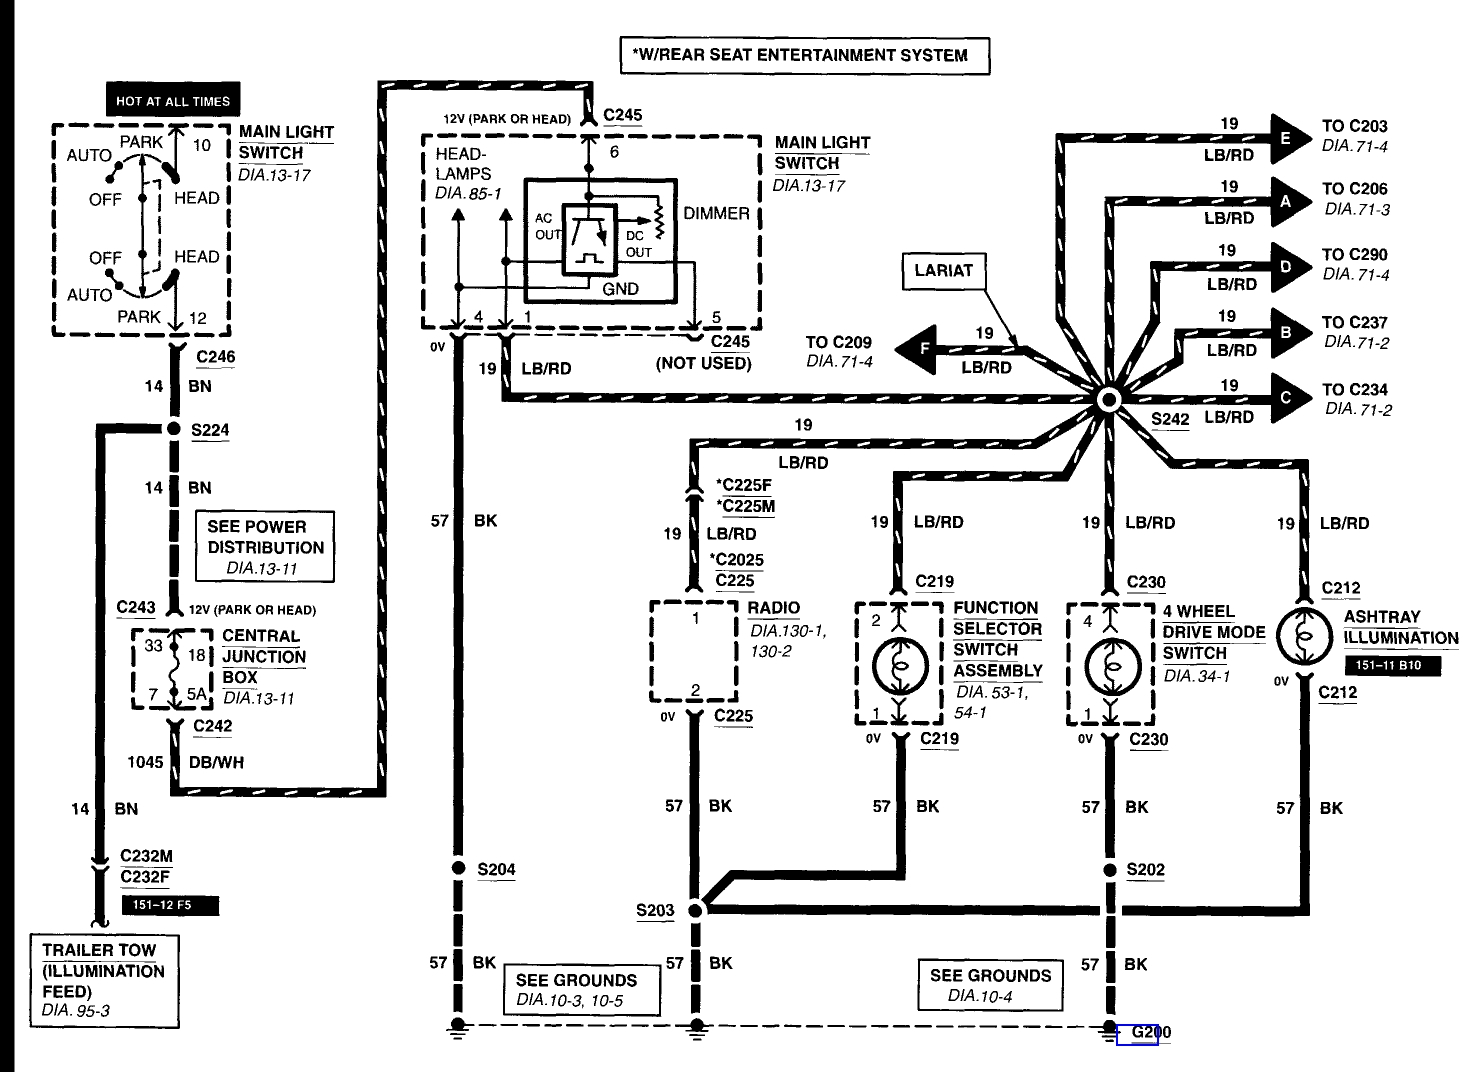 c3 headlight wiring diagram free picture schematic garmin fuel wiring diagram free picture schematic garmin 73sv wiring diagram | free wiring diagram